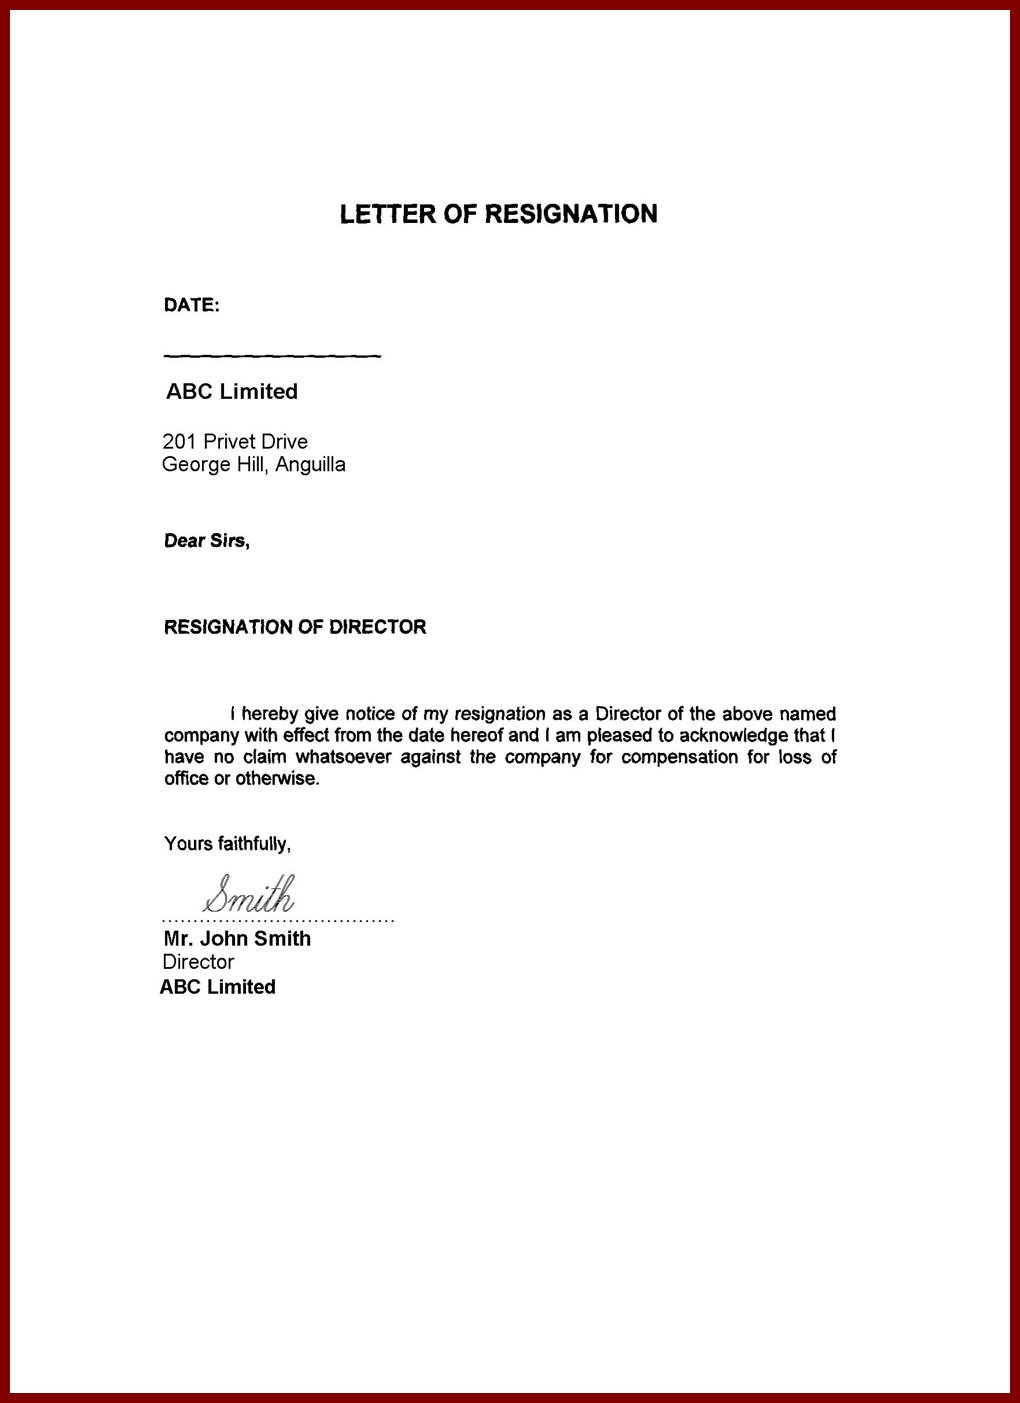 Immediate Resignation Letter Template - Ideas for Resignation Letters Image Collections Letter format